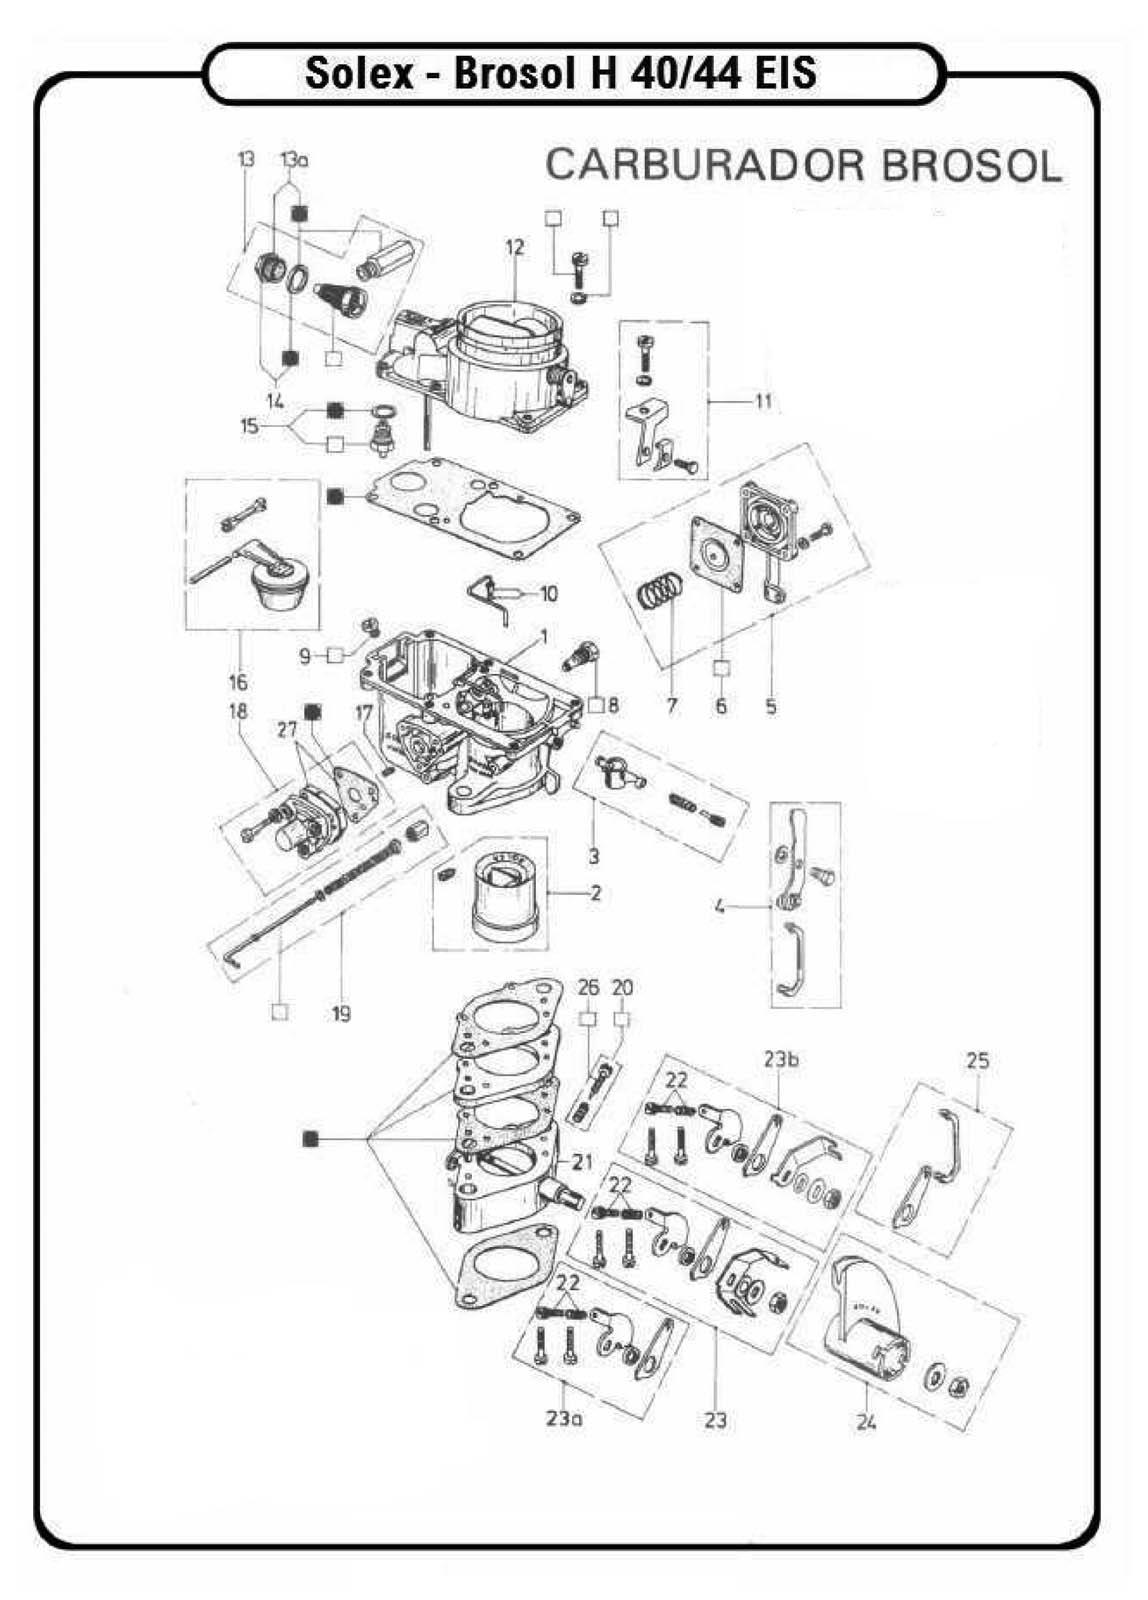 1971 Volkswagen Super Beetle Engine Diagram Volkswagen